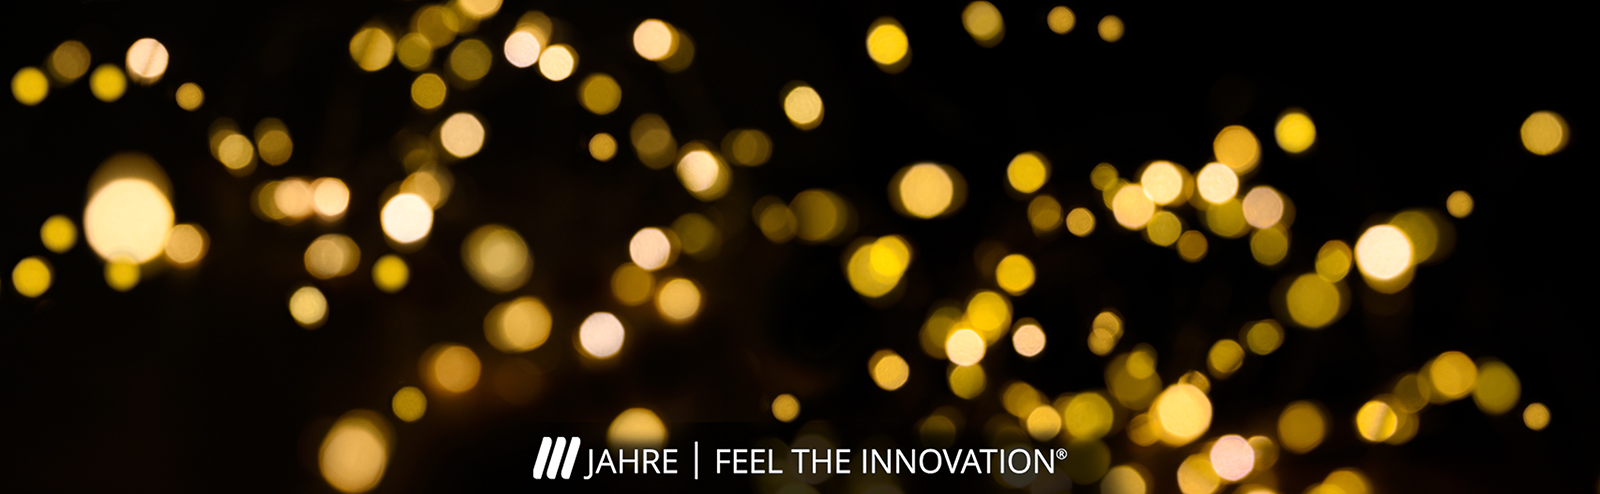 111 years of FEEL THE INNOVATION!